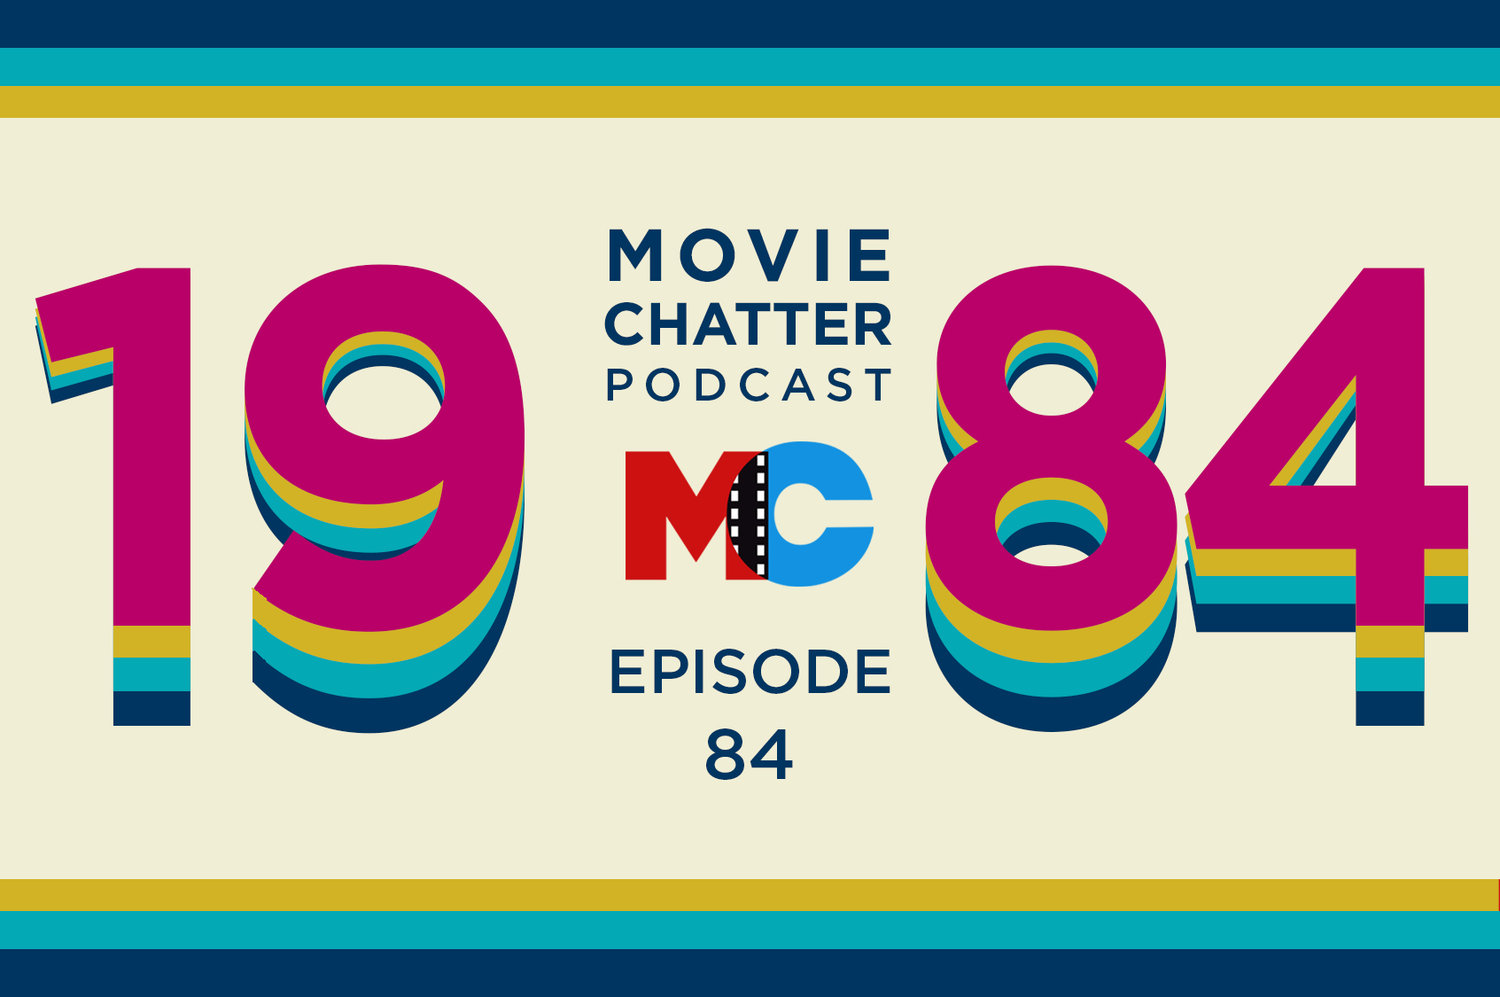 Episode 84 - 1984 — Movie Chatter Podcast